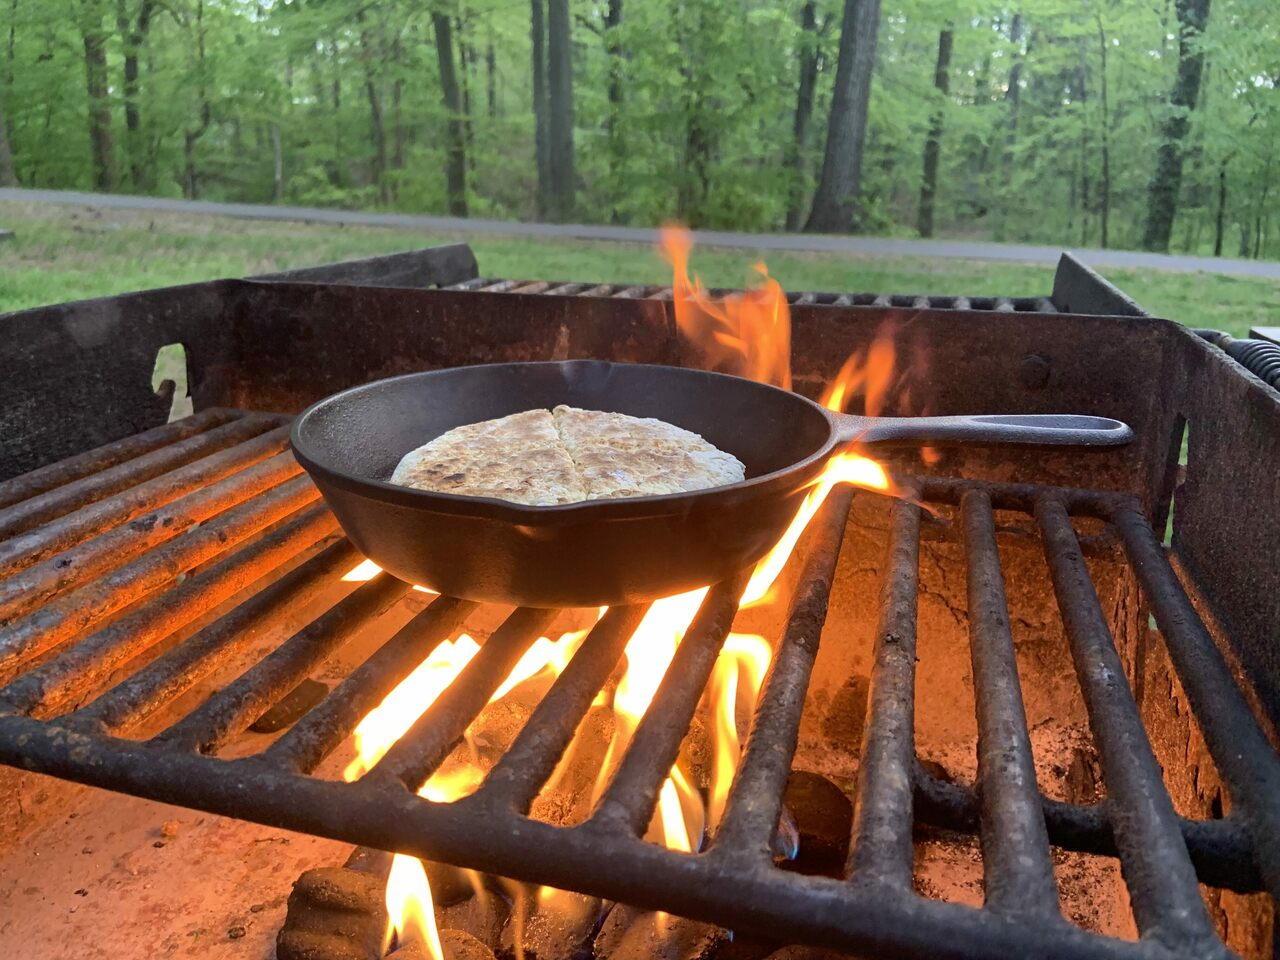 You can cook the bannock on the stove or, in the true spirit of Beltane, over an open flame.